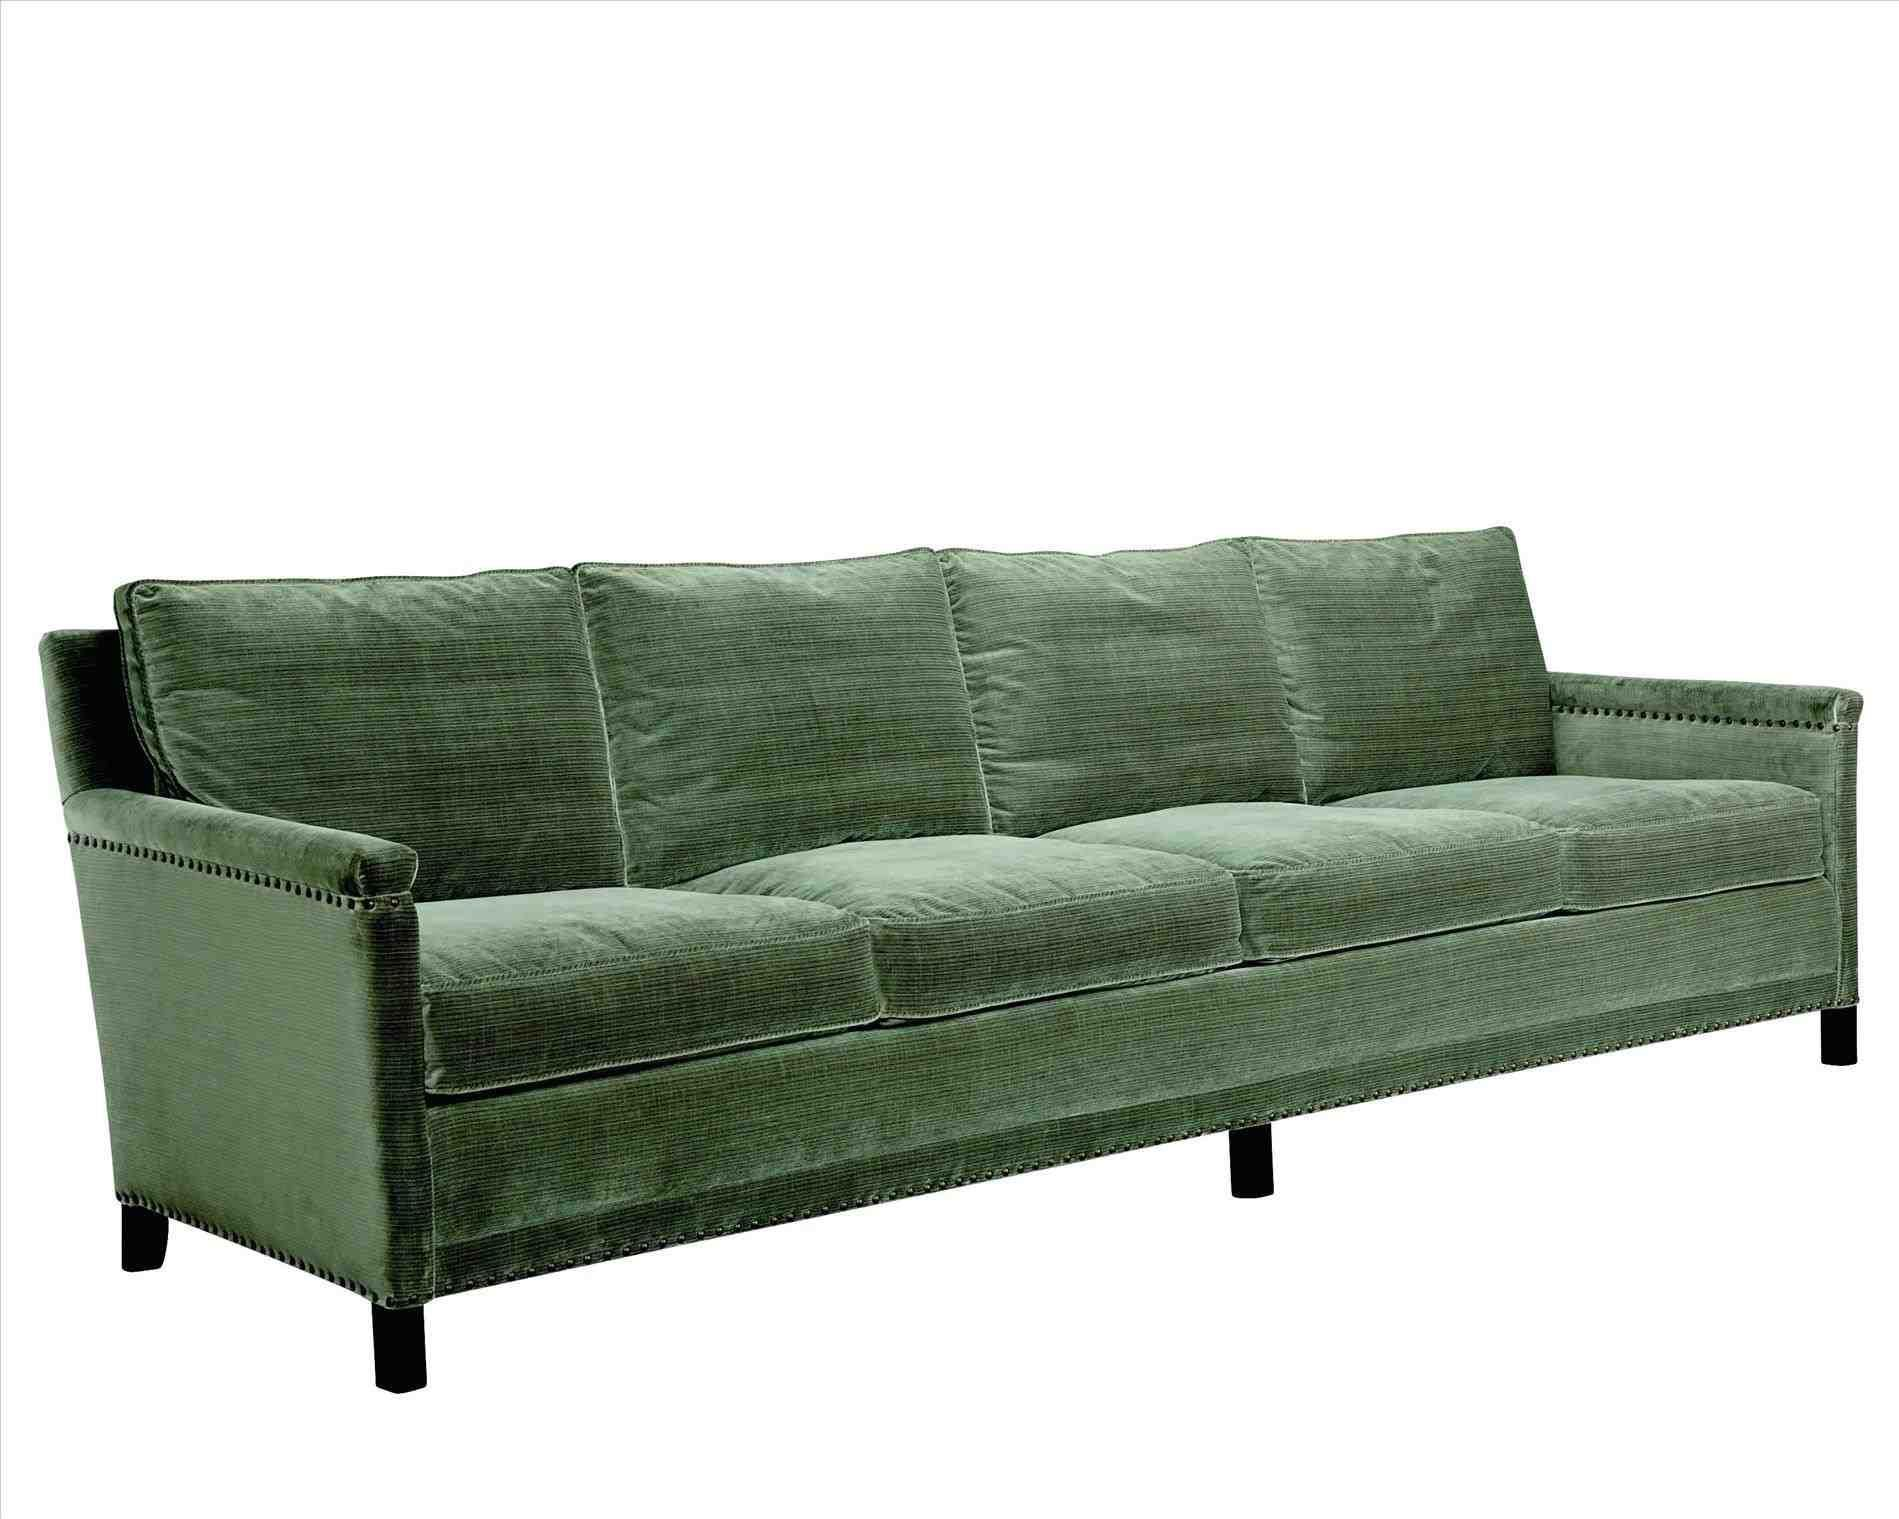 Cheap Futons At Lots Click Clack Sofa Furniture Grey Futon Beds Target With Floor Lamp And Rug For Bunk Photo 1 Of 7